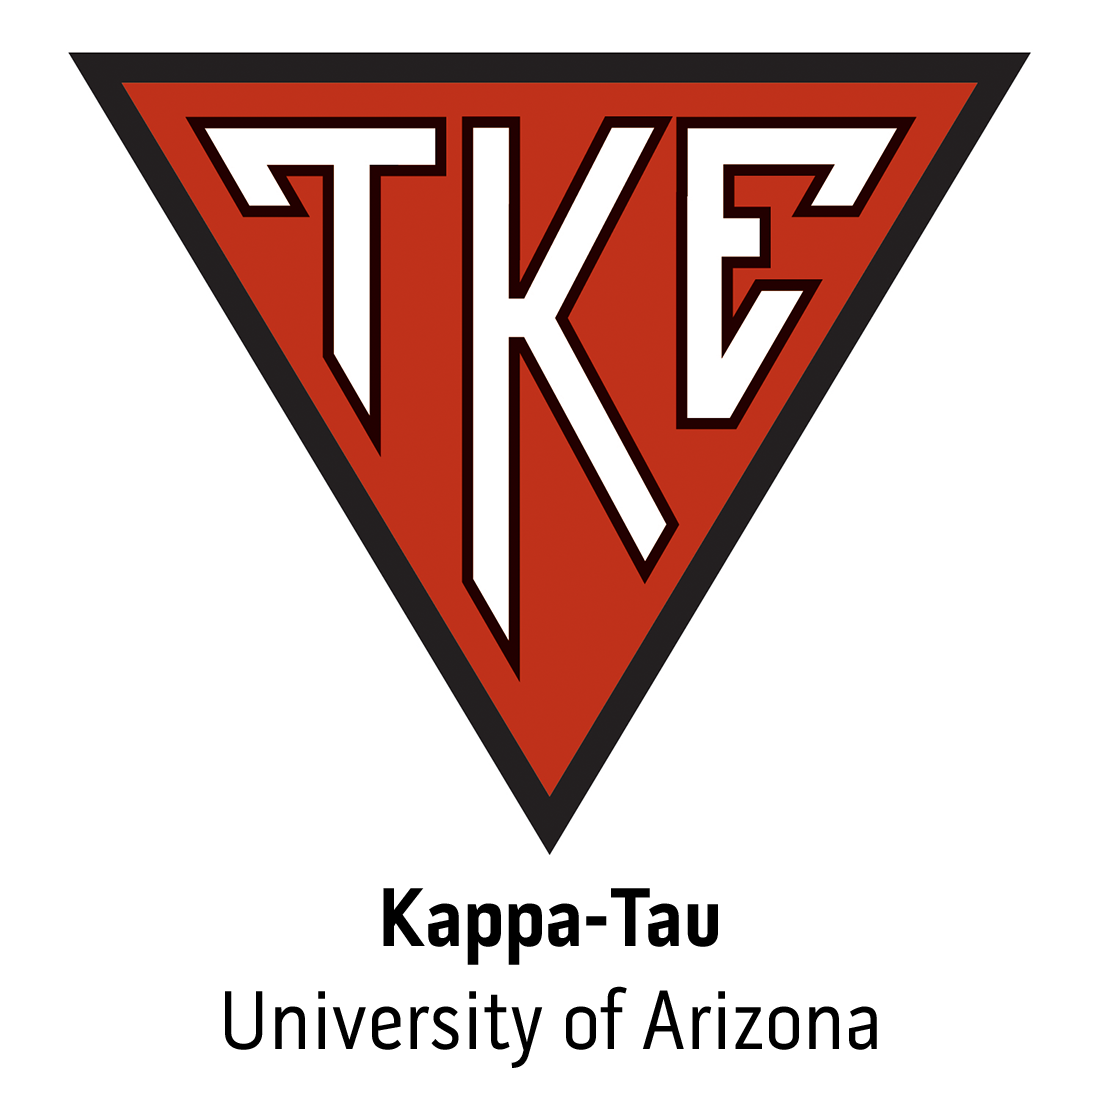 Kappa-Tau Colony at University of Arizona